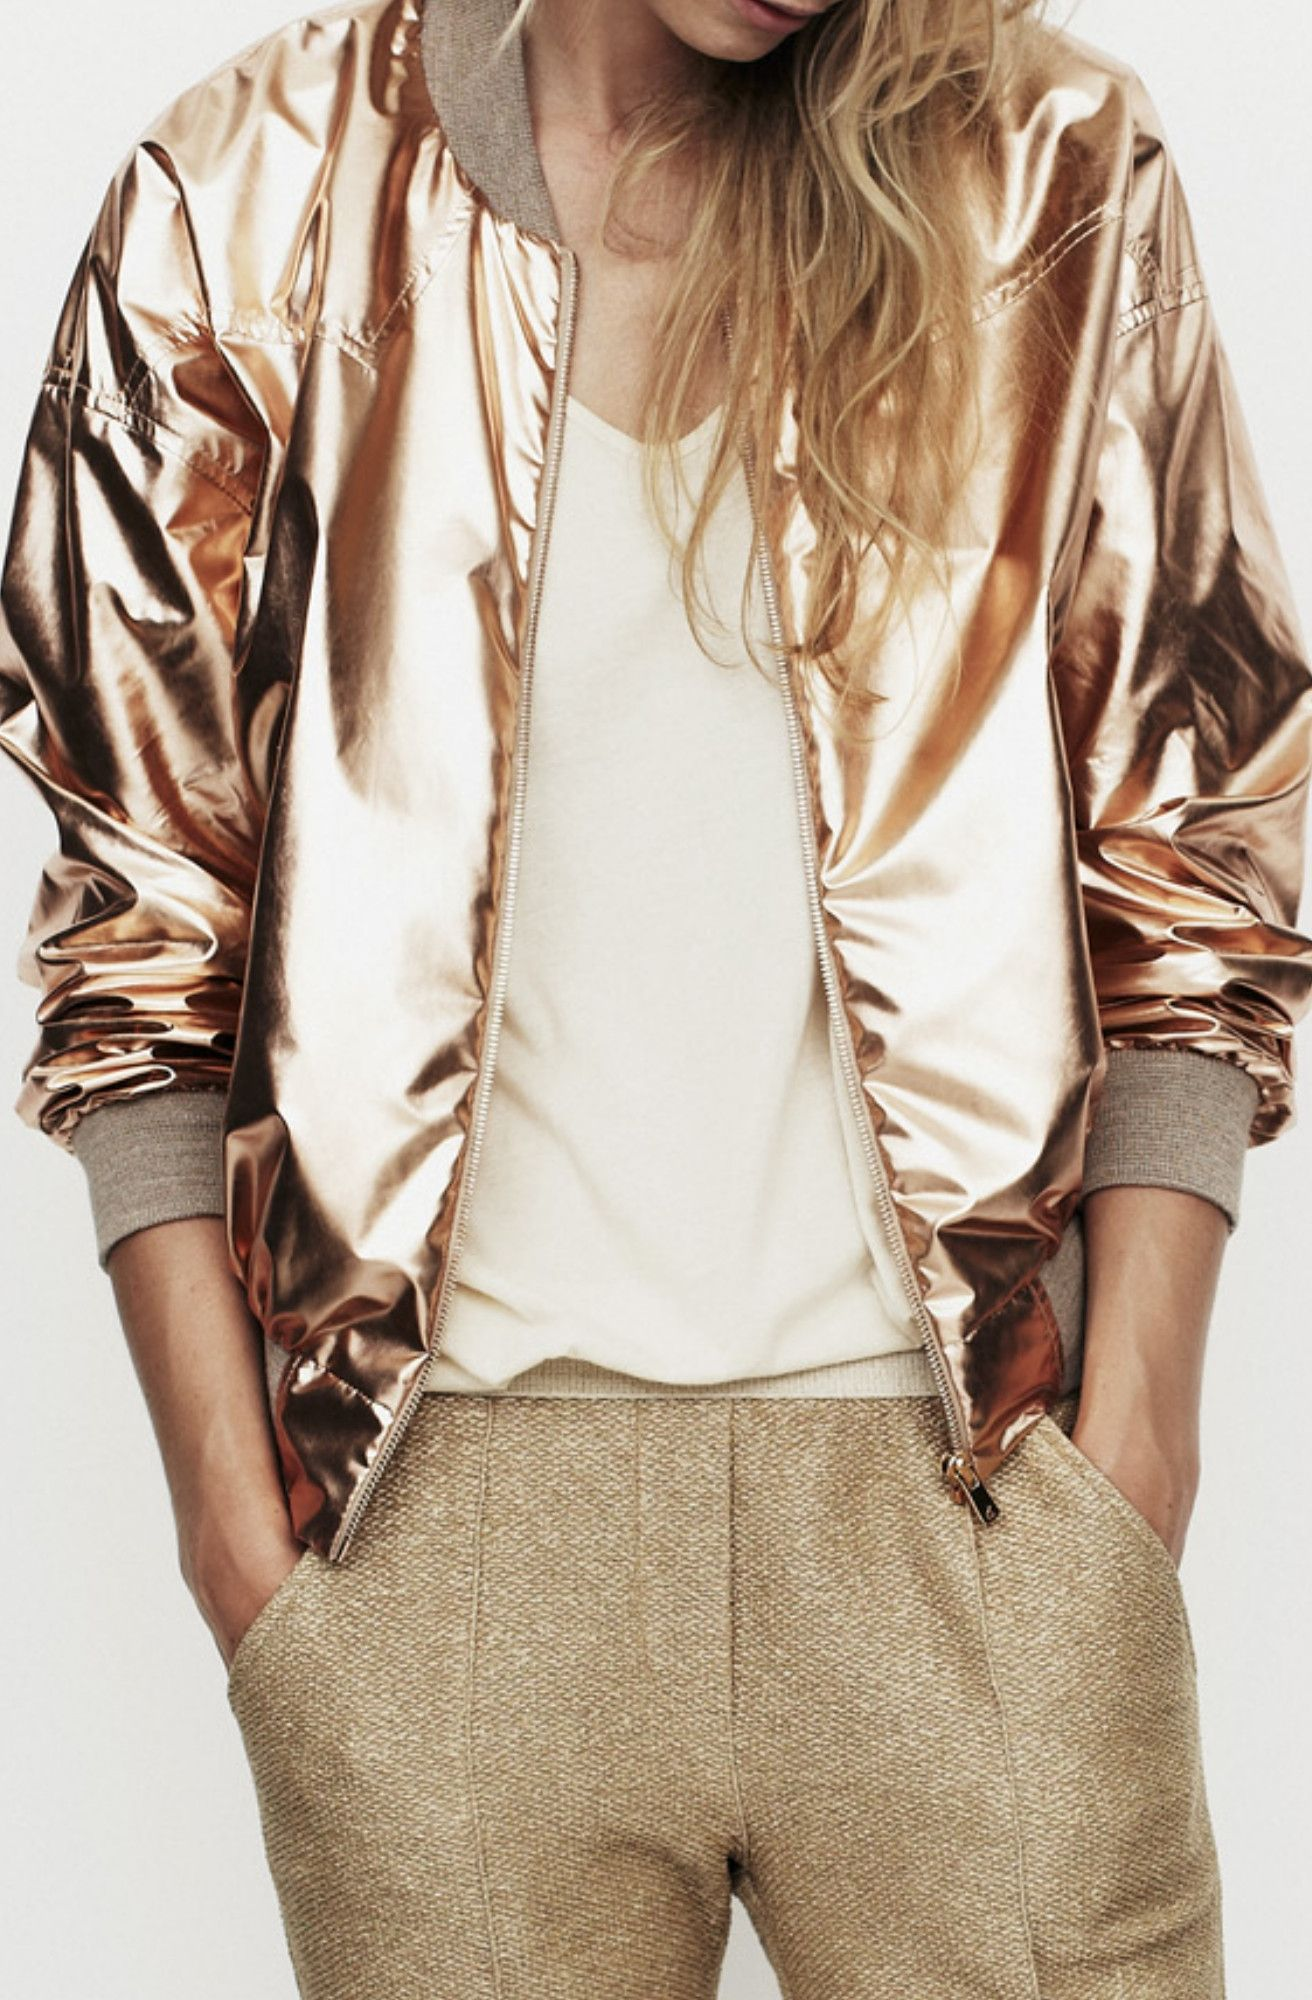 Gold Bomber Jacket. Metallic Outfit. Urban Outfit. Urban Style. Hip Hop Fashion. Swag. Hip Hop Style #style #fashion #streetstyle